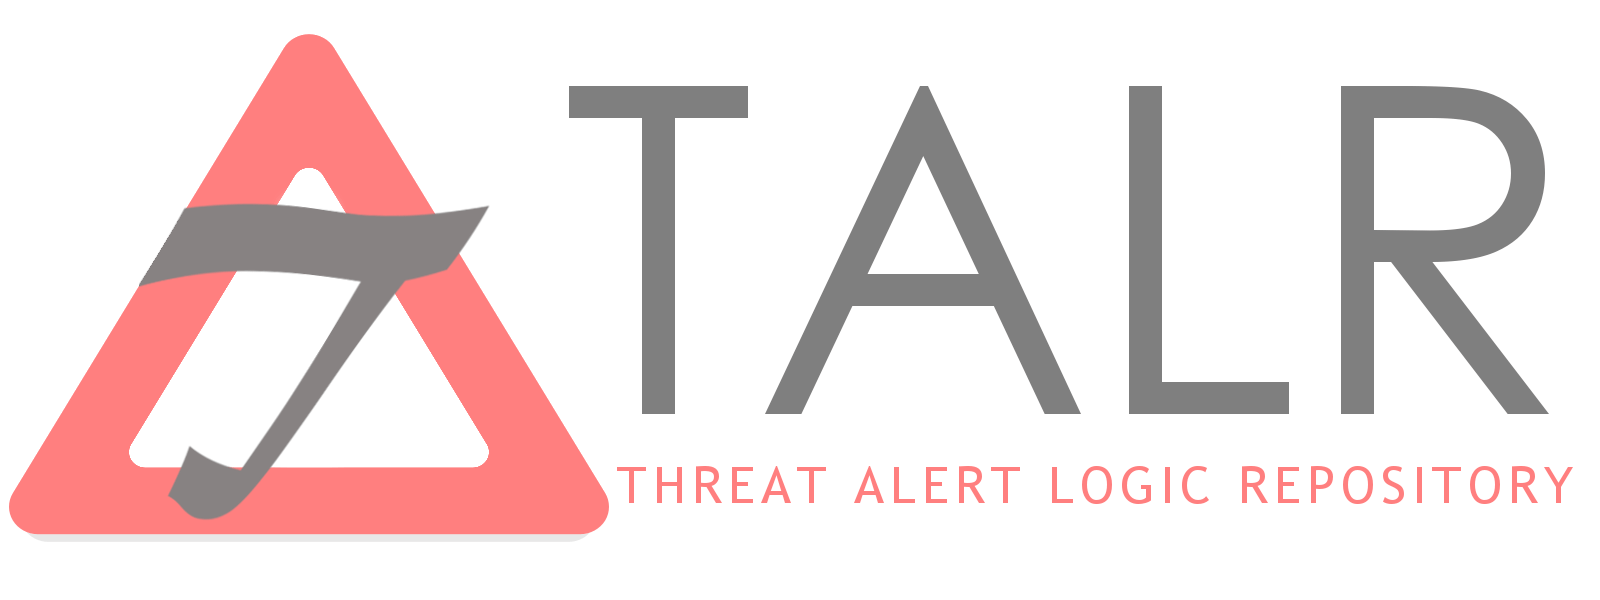 TALR: Threat Alert Logic Repository, a cybersecurity tool